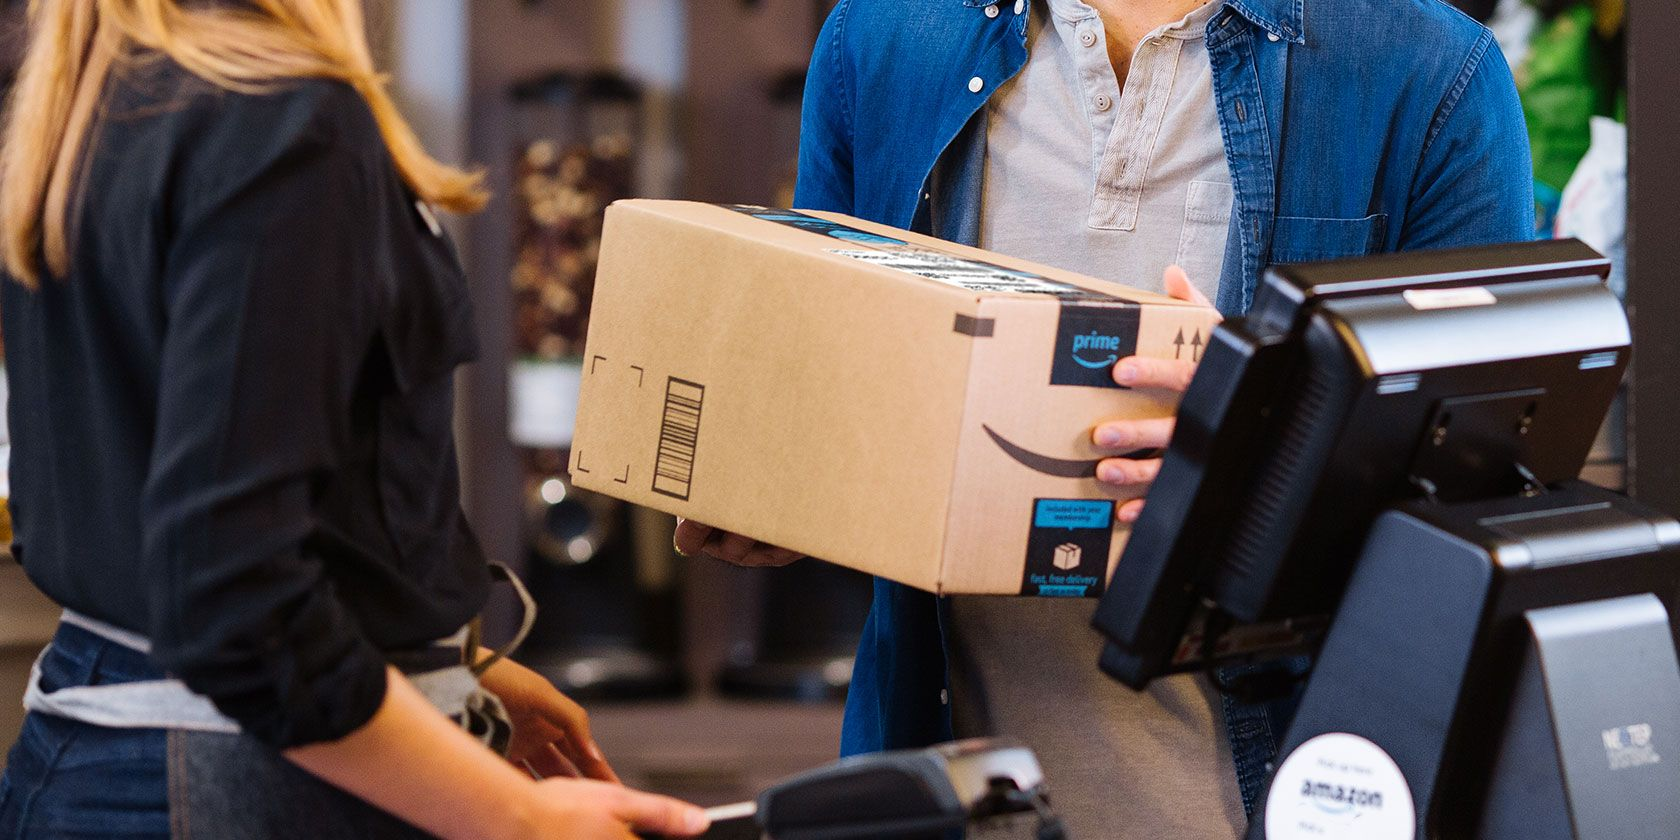 How to Buy Online Safely, Securely, and Confidently